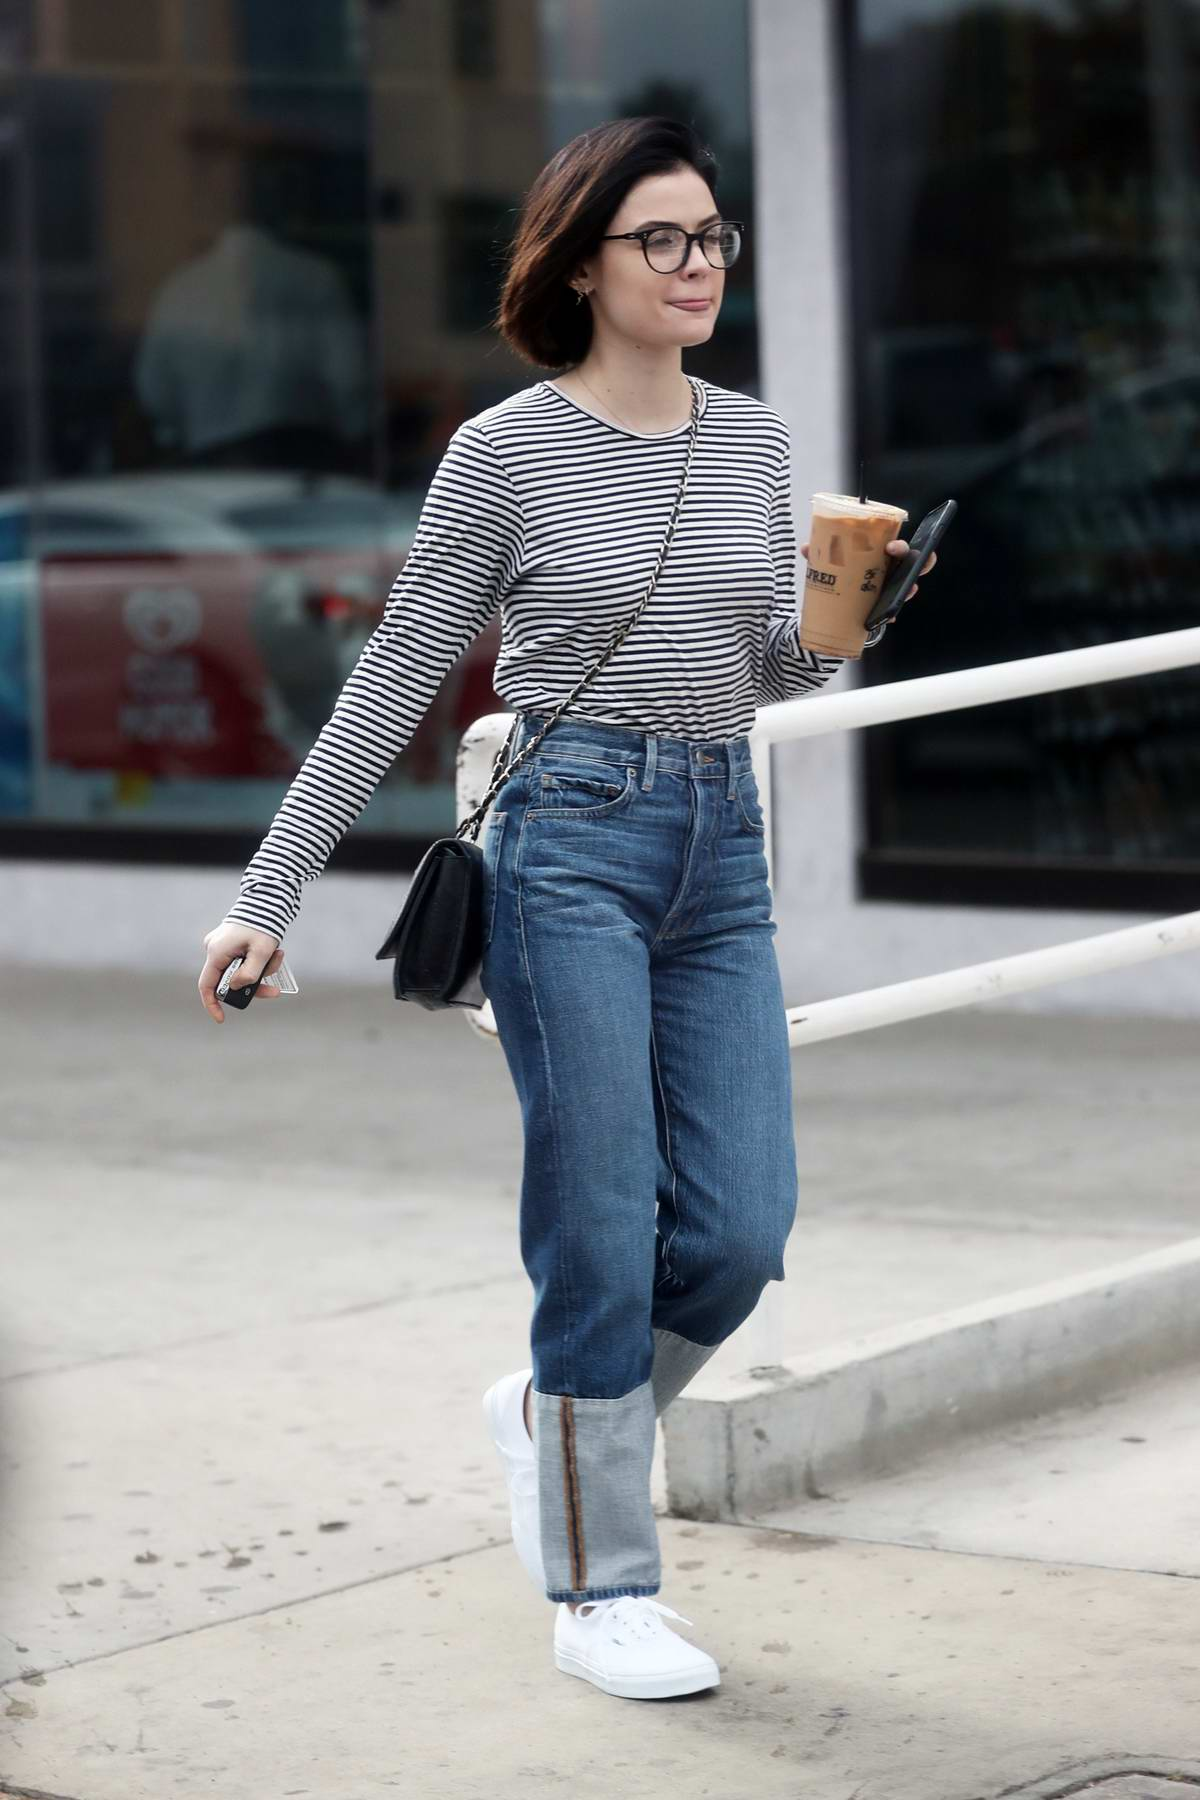 Lucy Hale wears stripes while out grabbing an iced coffee in West Hollywood, Los Angeles